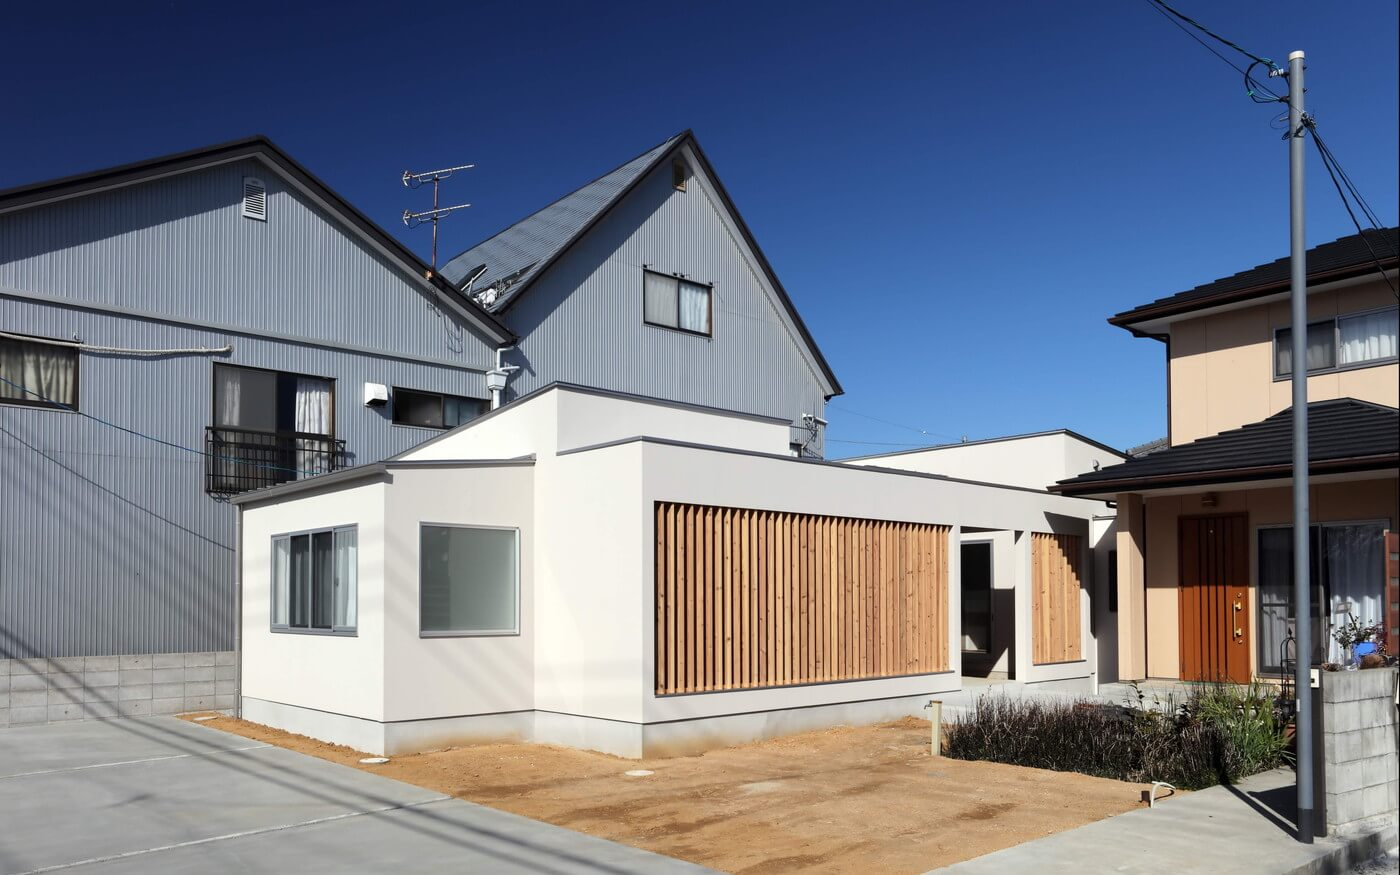 円座の家02 -House in Enza02-